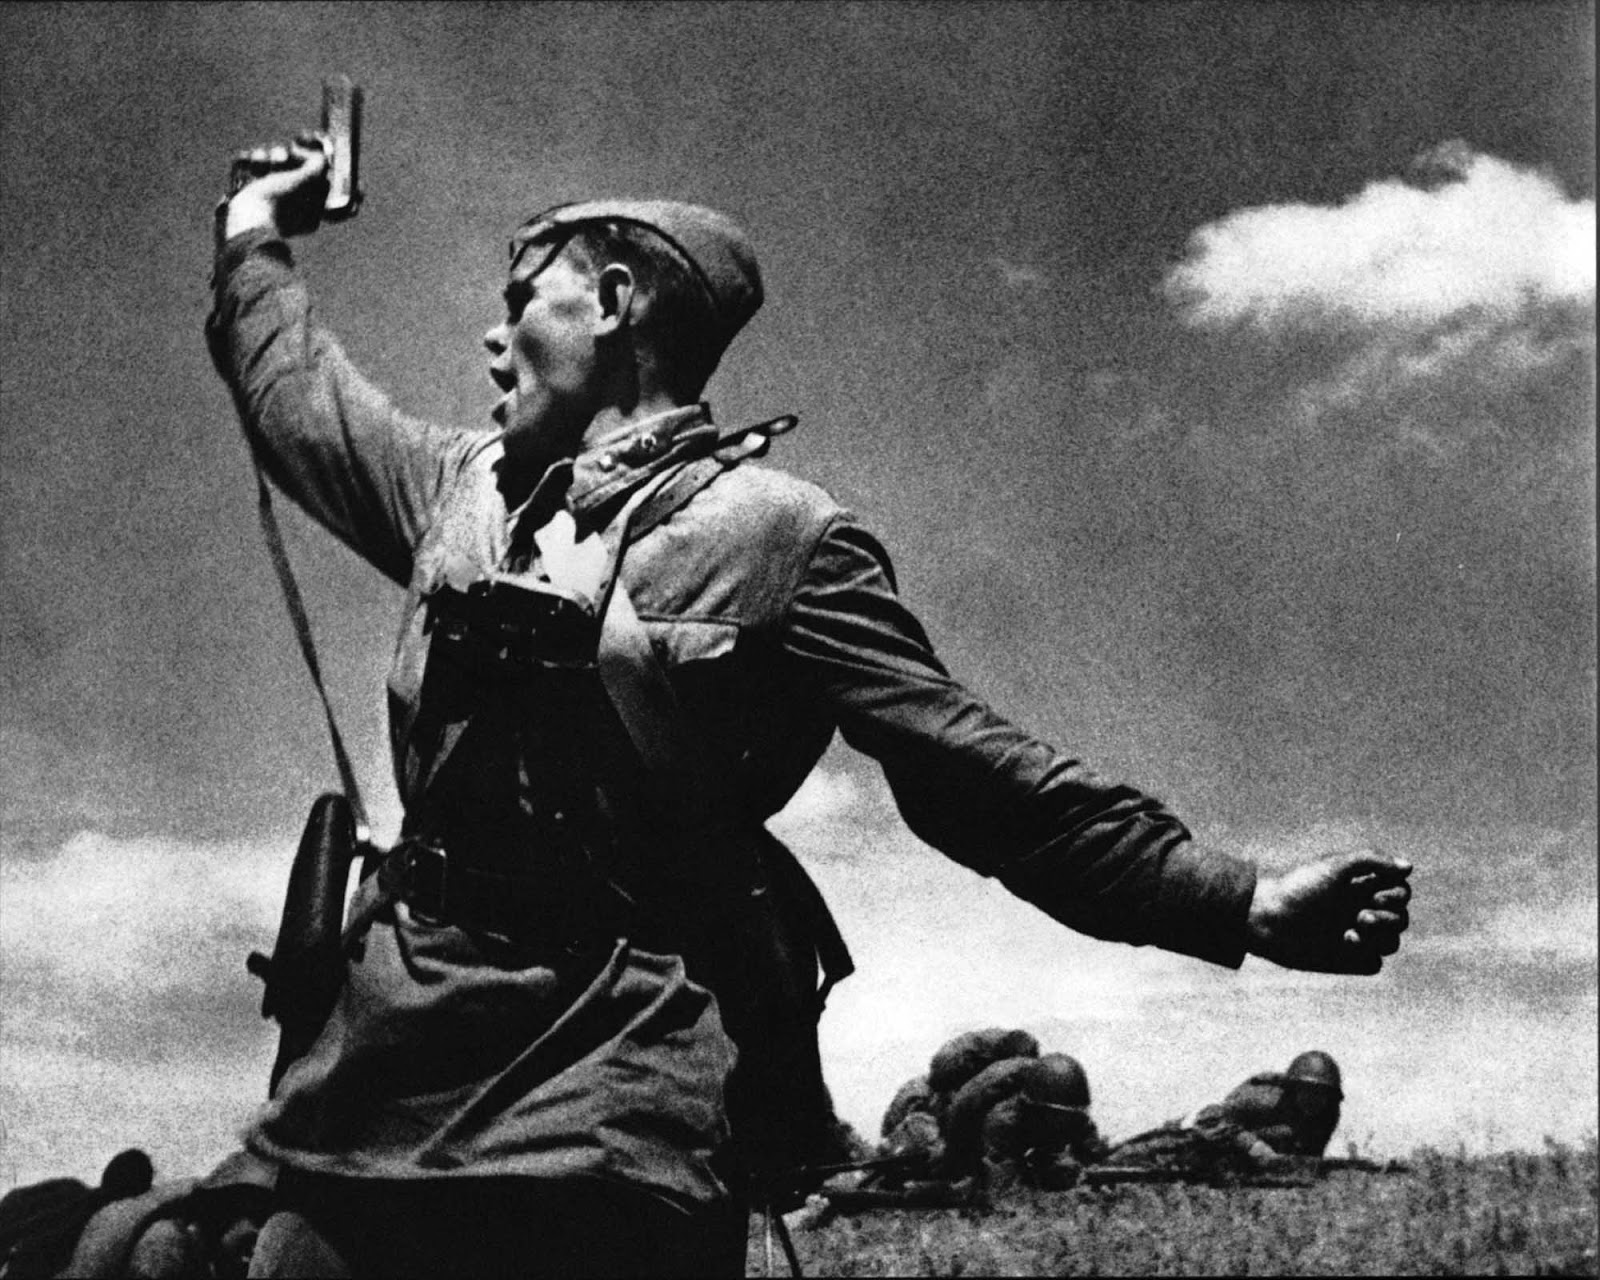 Political commissar Alexey Yeremenko leads his men into combat, he was killed minutes after this photo was taken, 1942